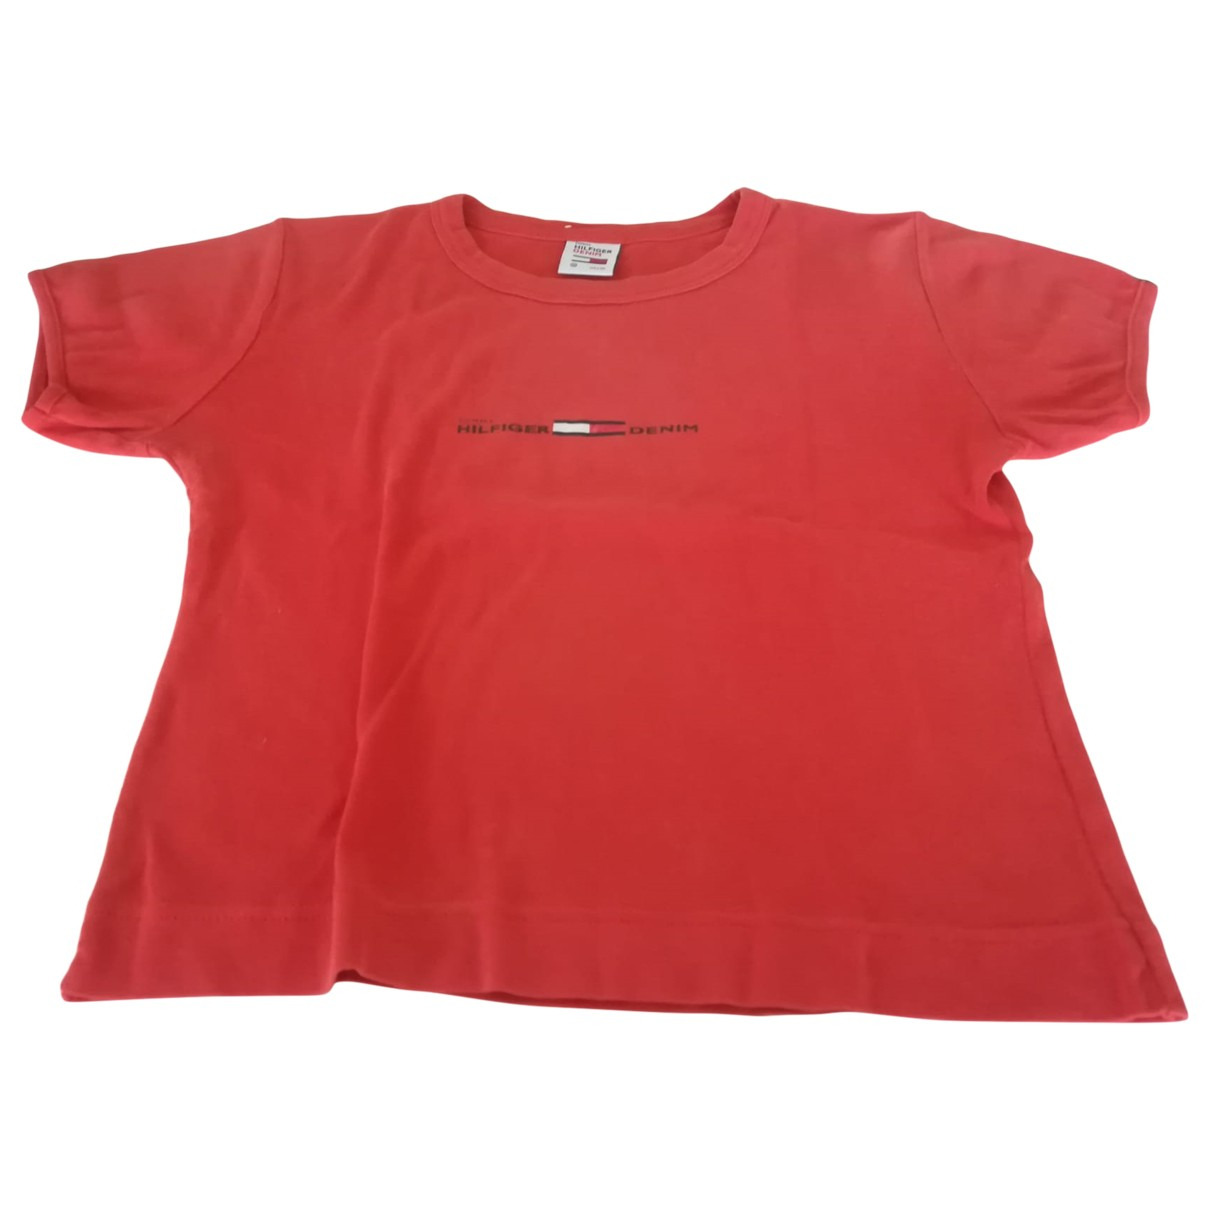 Tommy Hilfiger \N Red Cotton  top for Women 38 FR